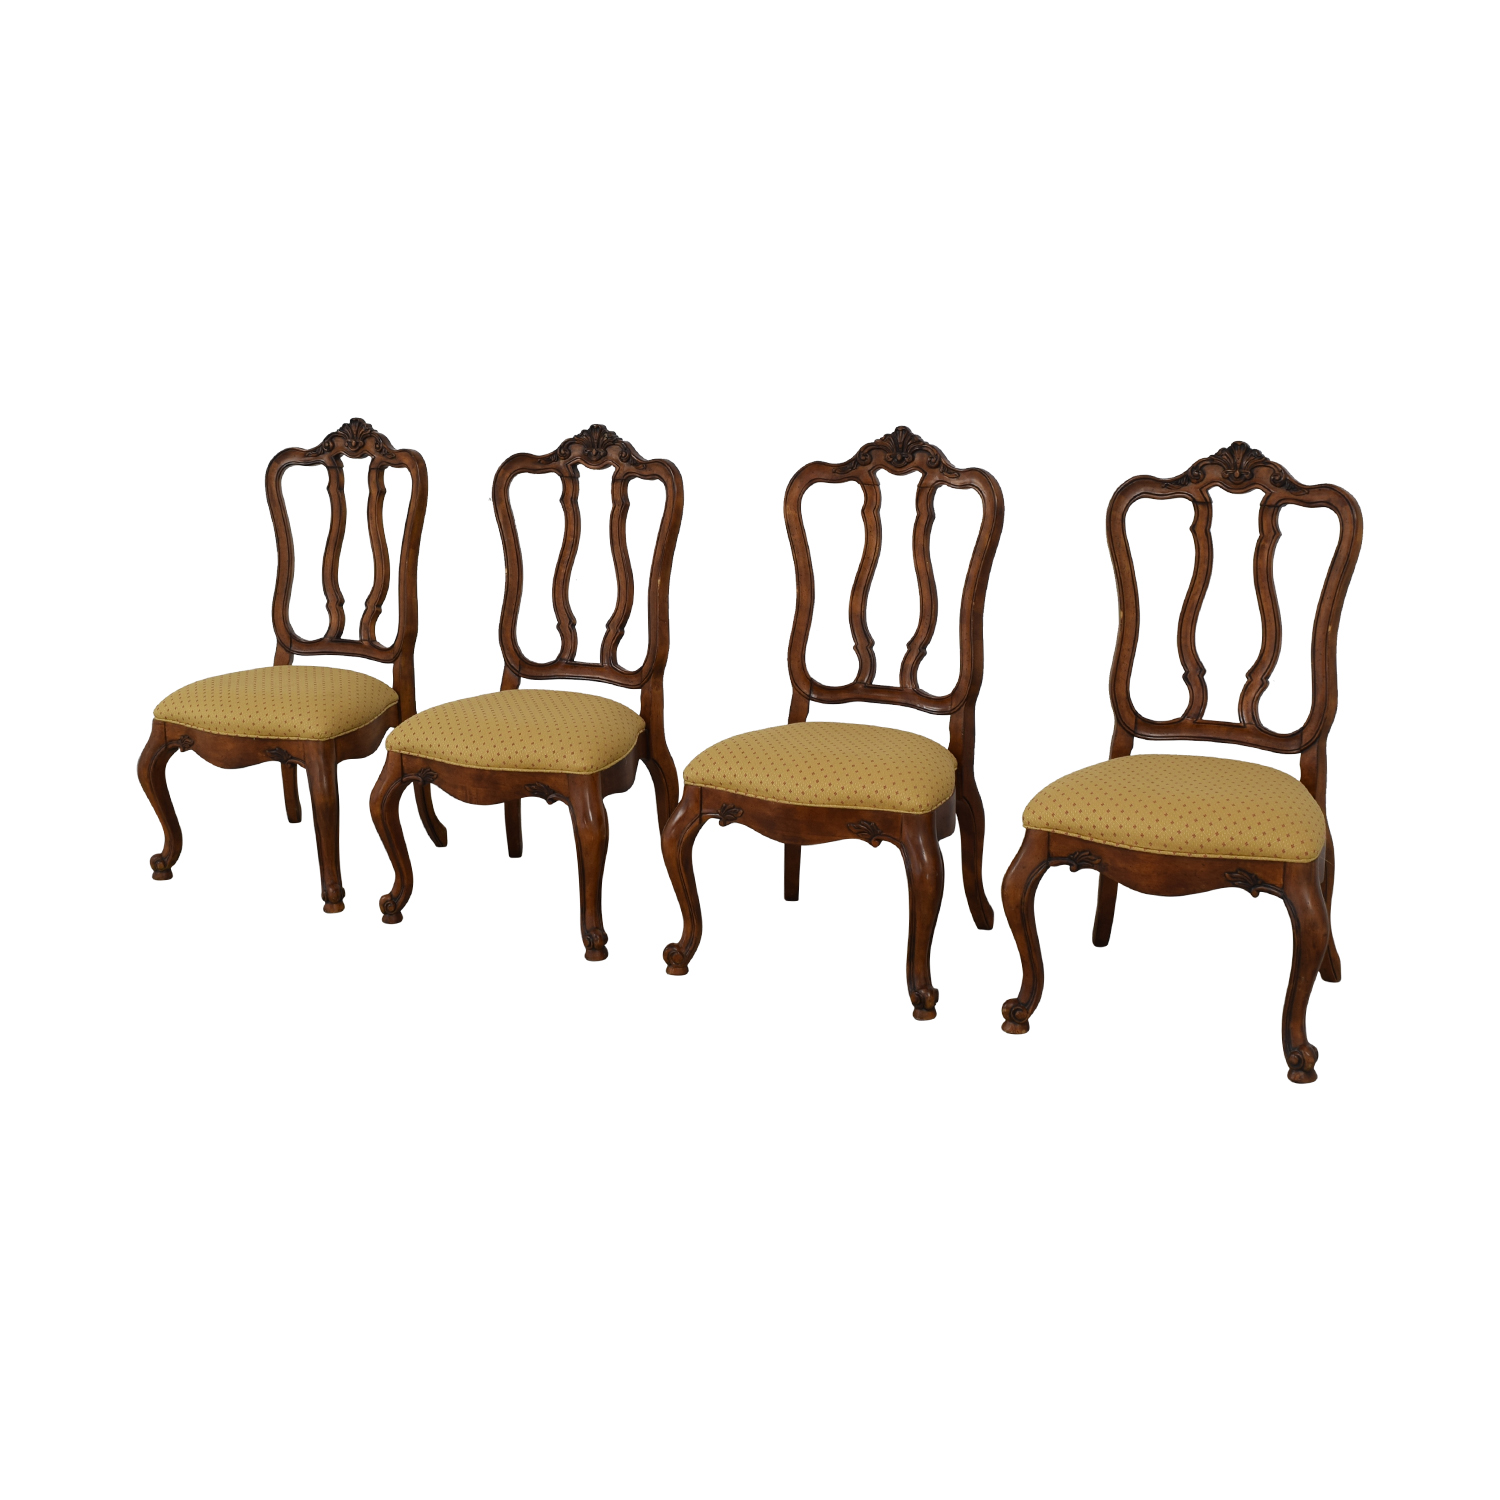 Ethan Allen Ethan Allen Dining Side Chairs for sale